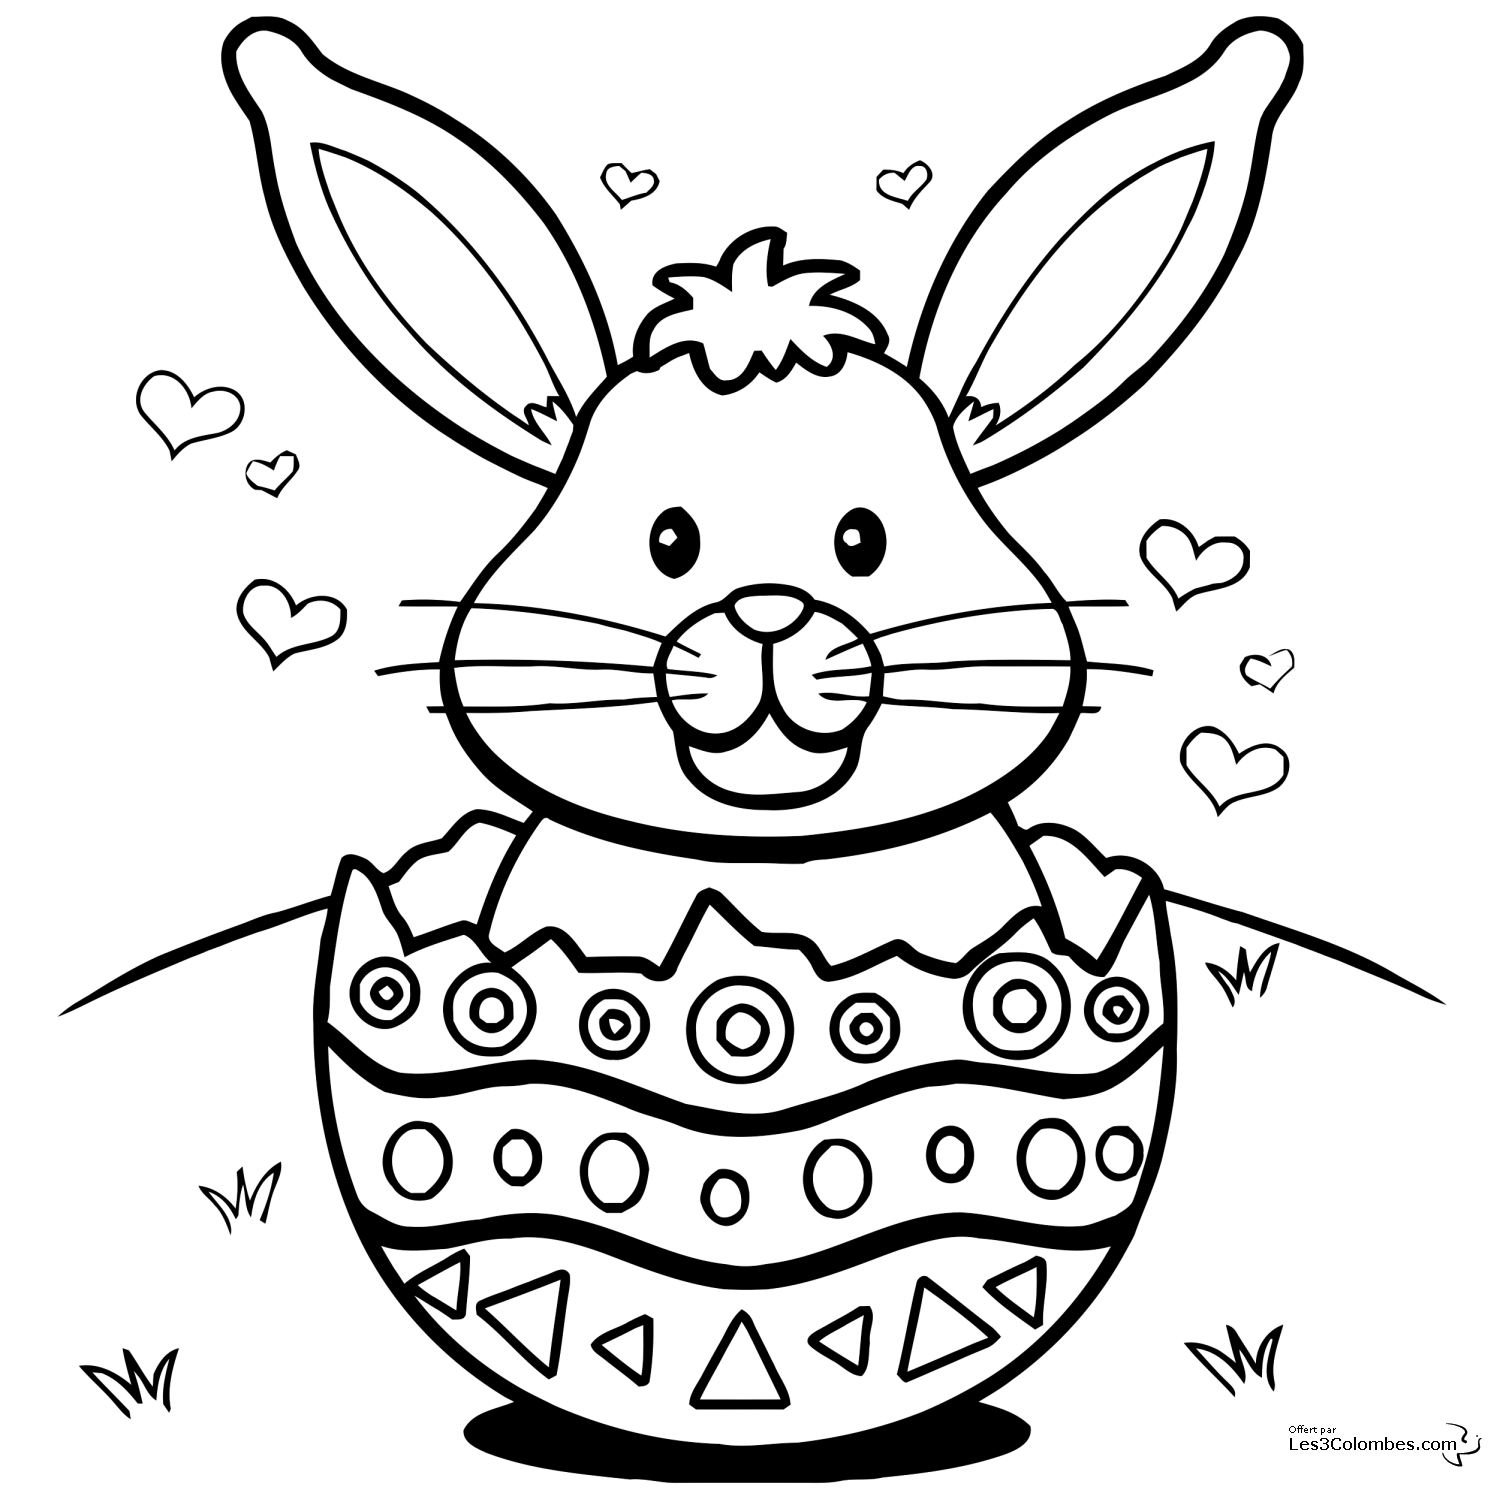 kids easter colouring pages printable easter eggs coloring pages inspirational easy easter colouring pages kids